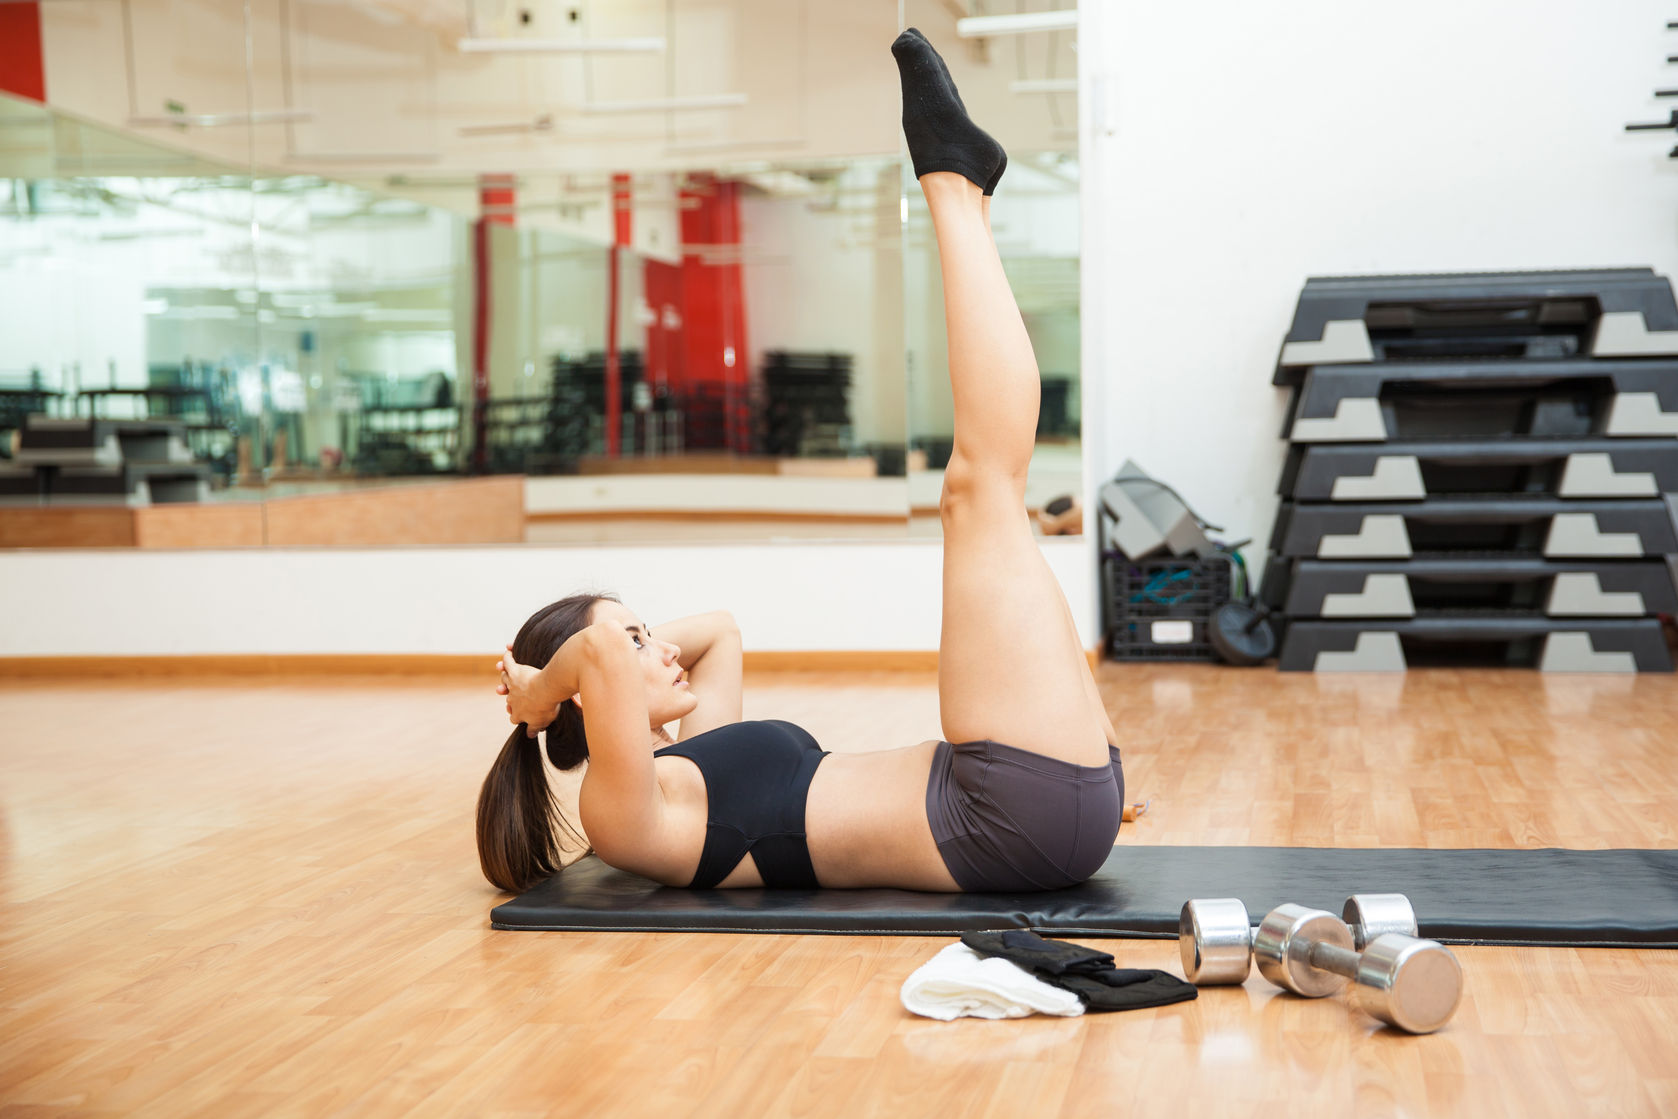 54131949 - profile view of a beautiful young hispanic woman raising her legs and doing crunches at a gym